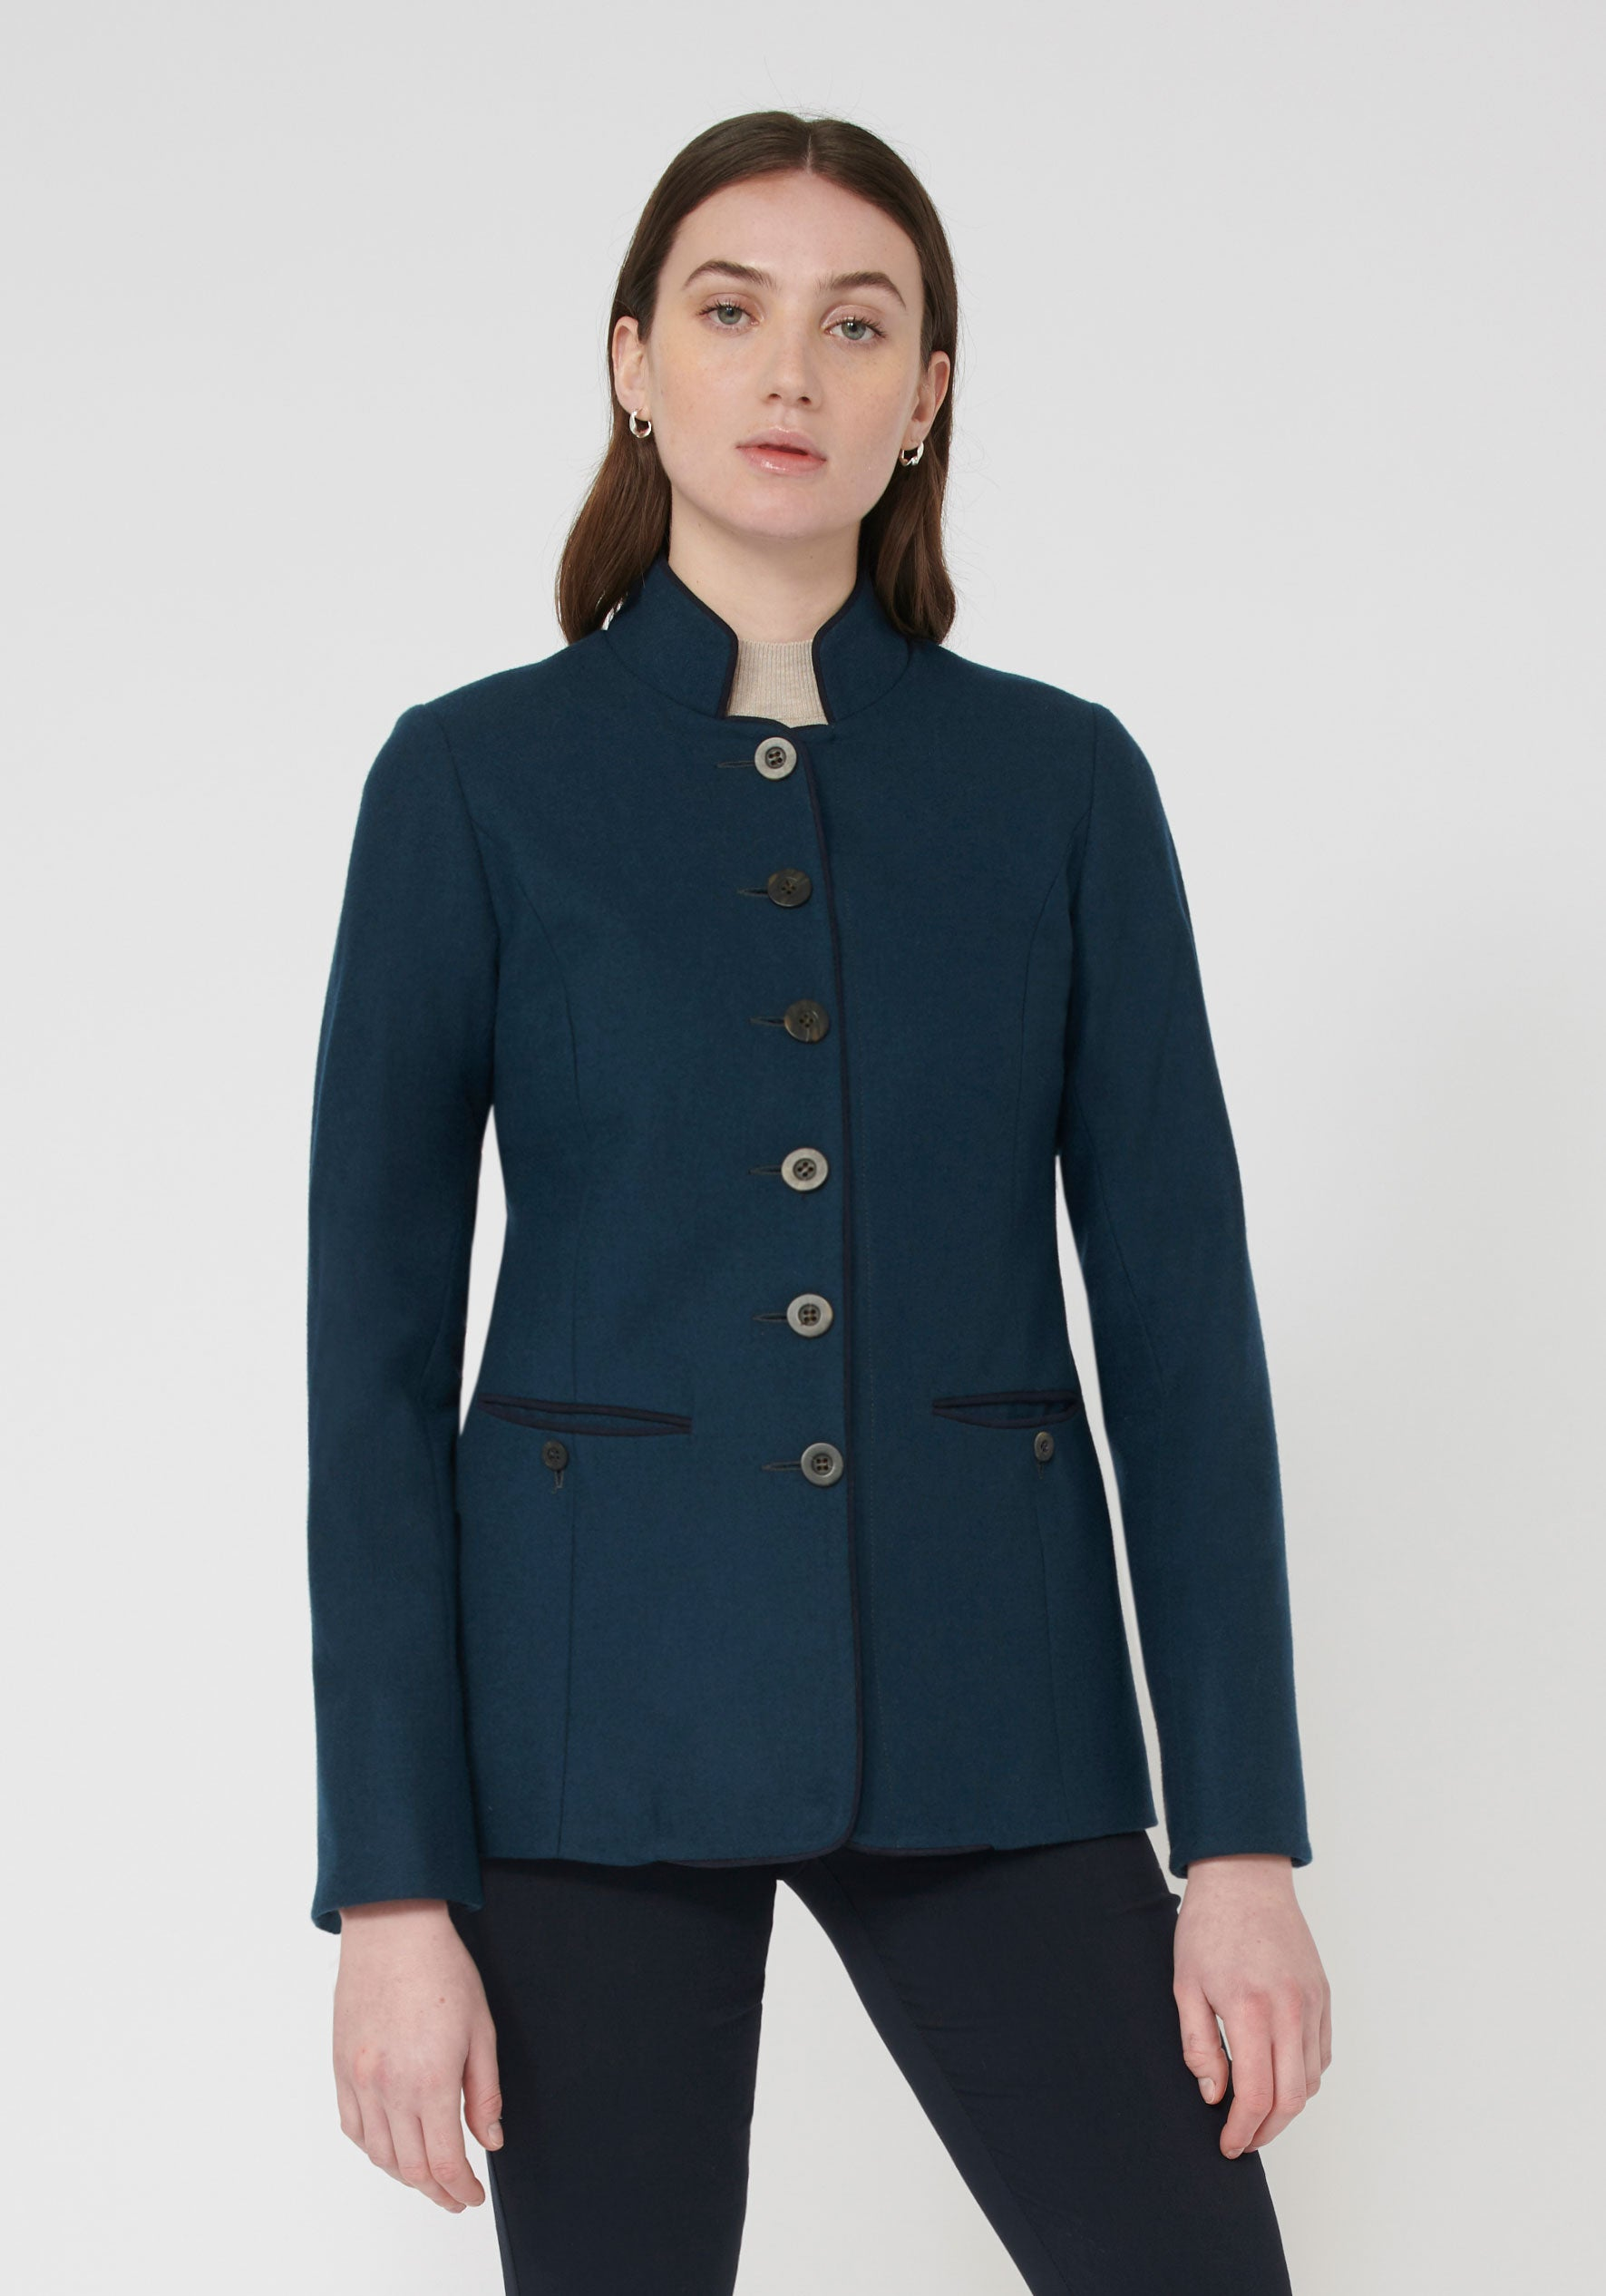 Patmos Jacket Antique Blue.